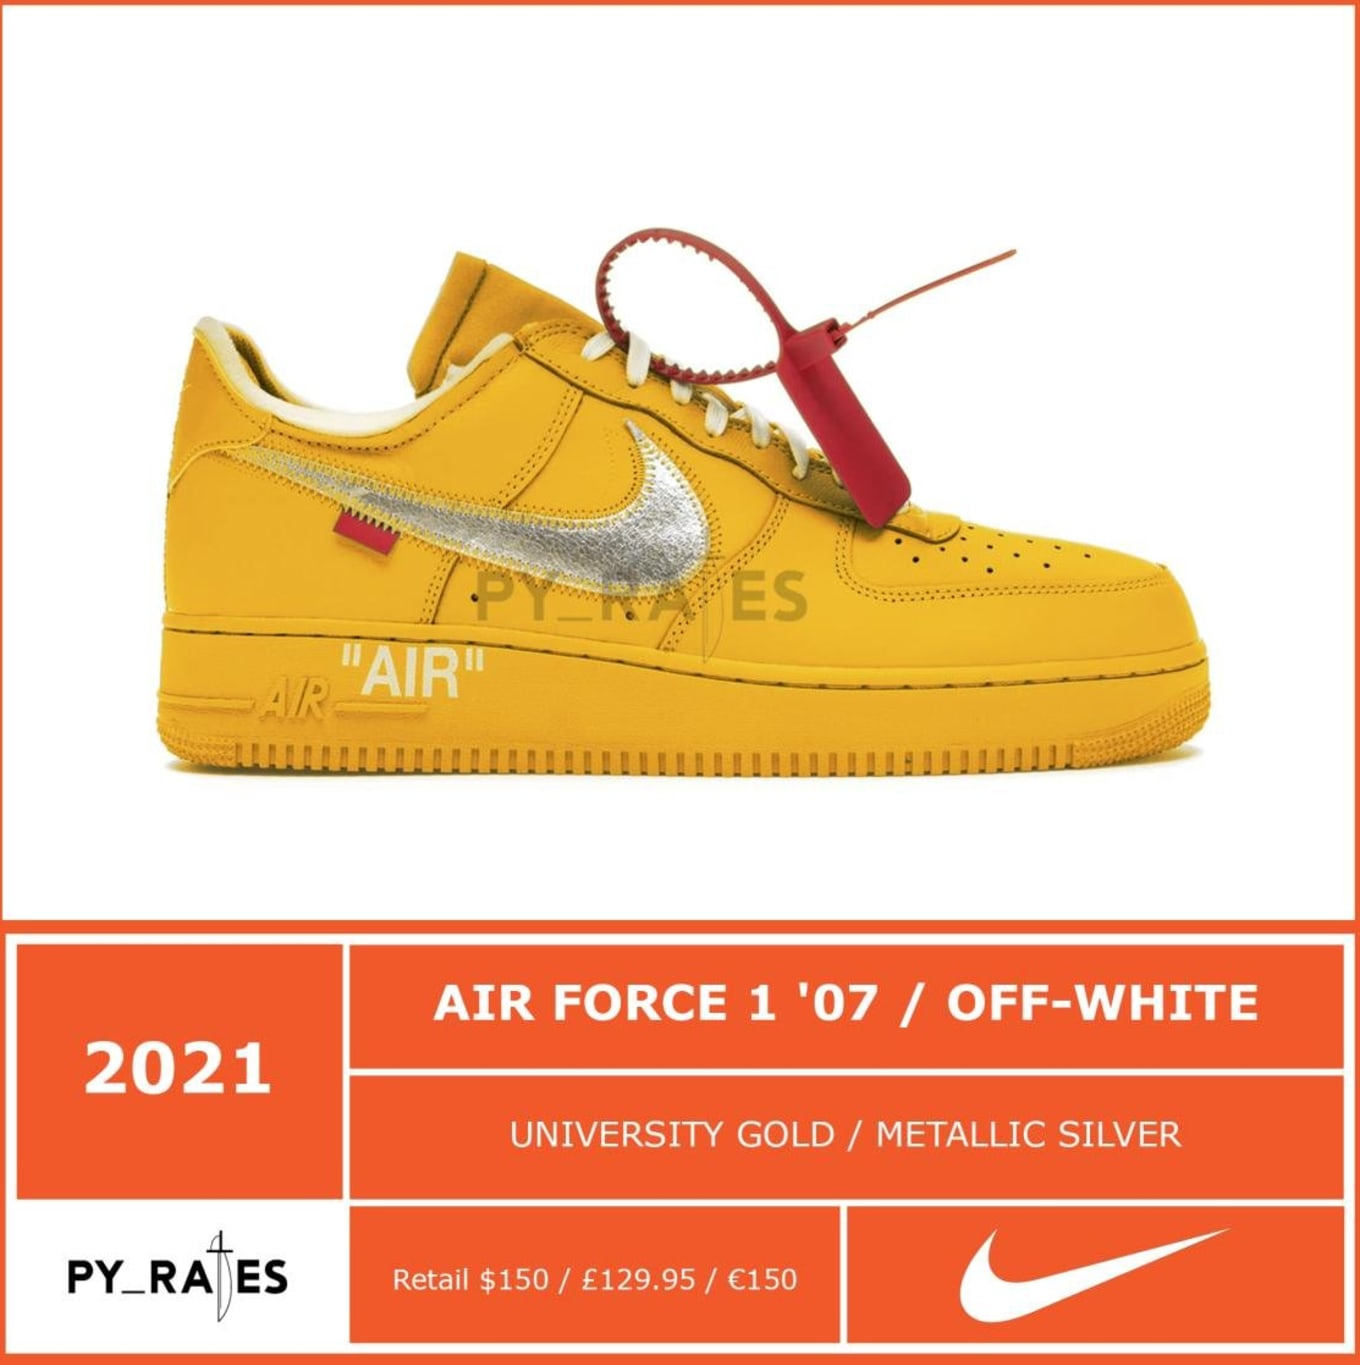 air force 1 off white release date